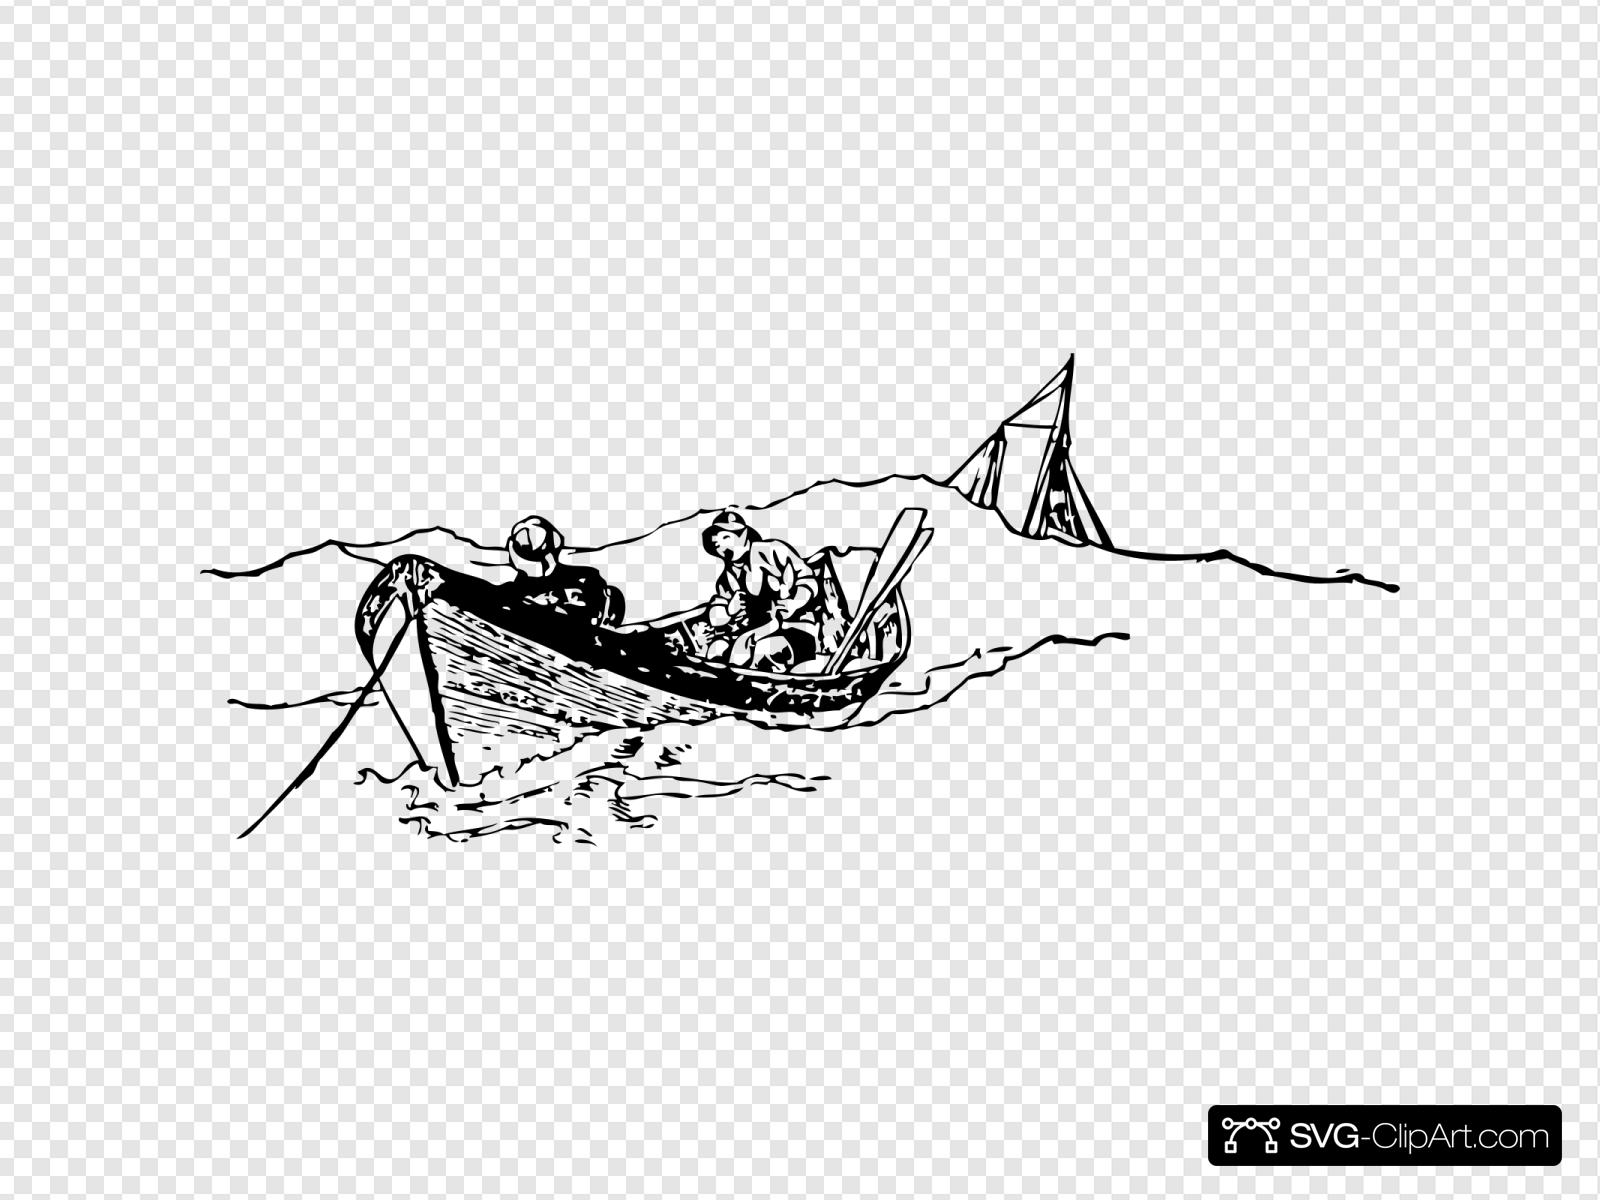 Download Small Rowing Boat With Fishermen Svg Vector Small Rowing Boat With Fishermen Clip Art Svg Clipart